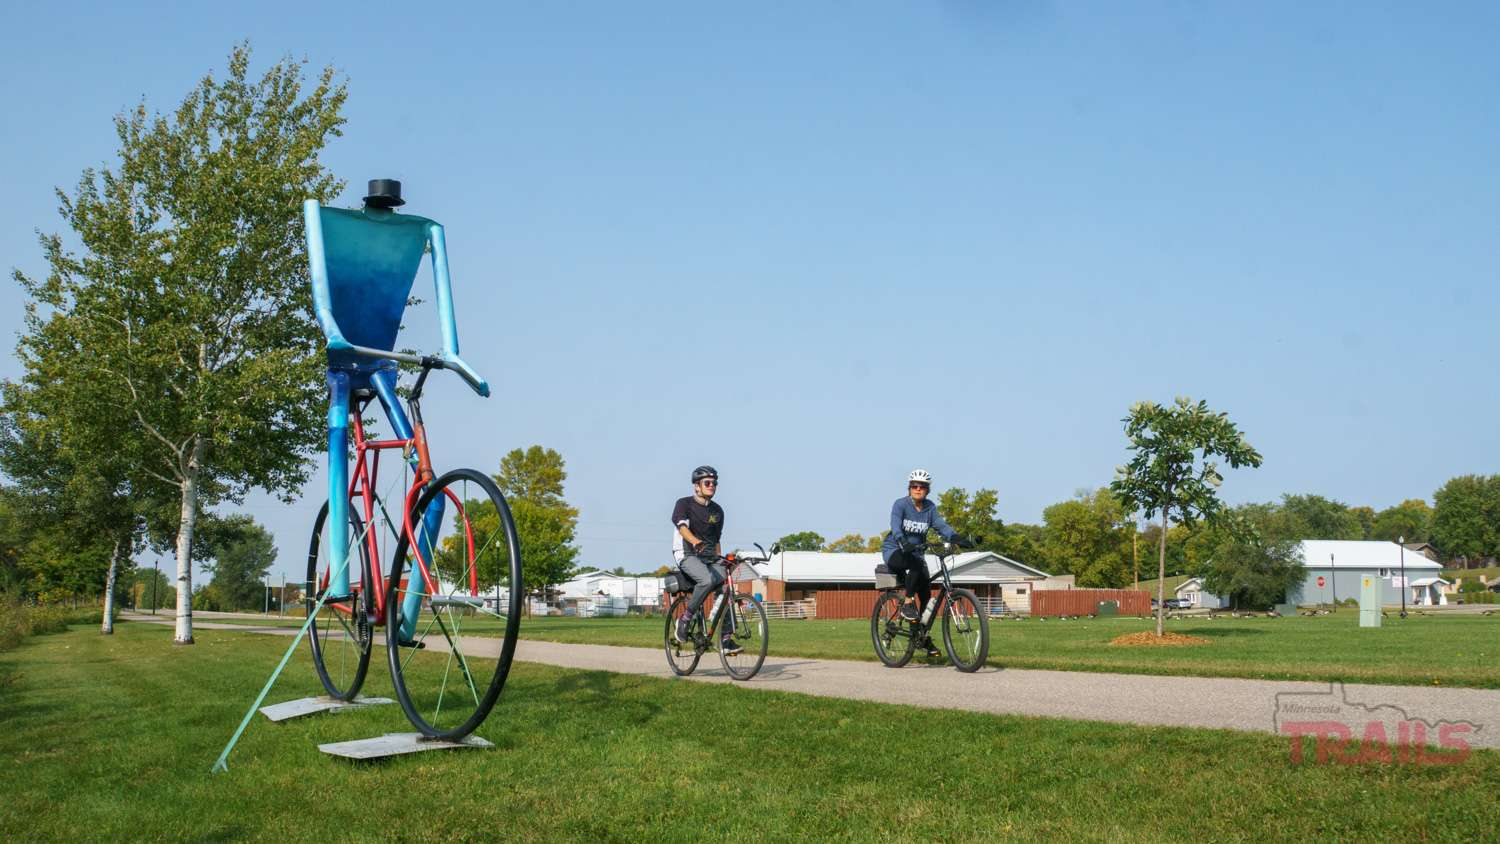 Two people bike by a sculpture of a bicyclist